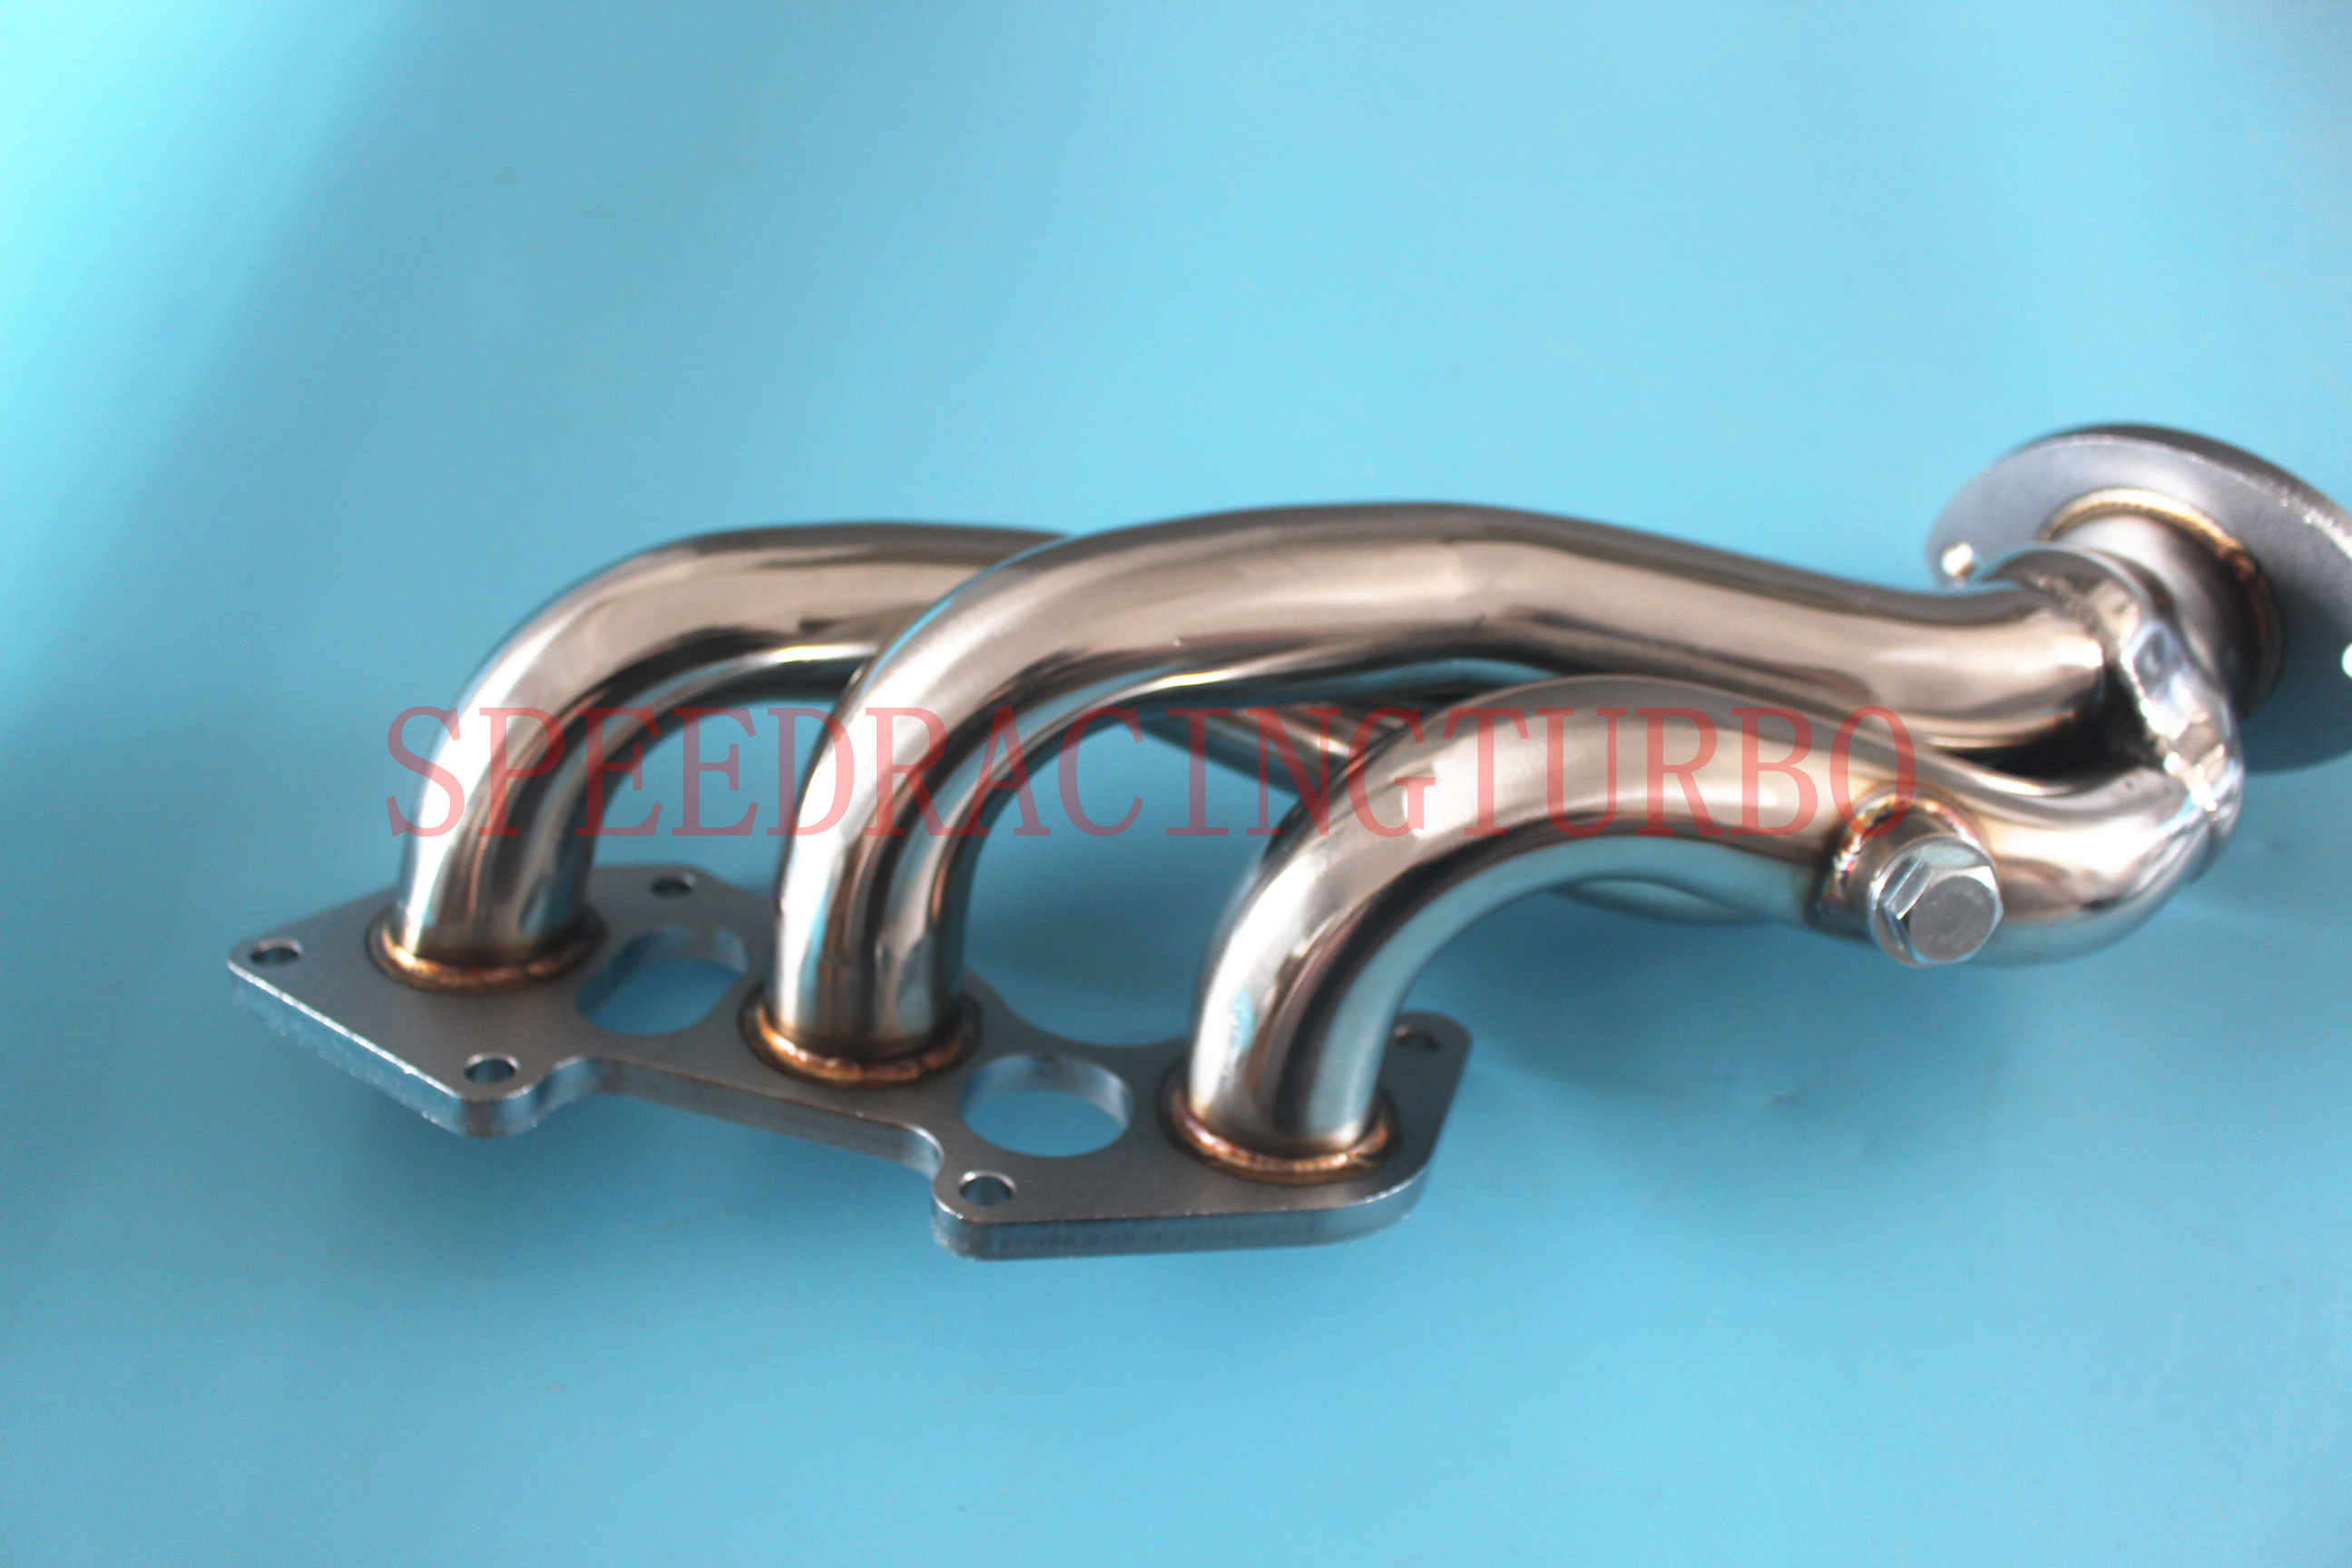 EXHAUST HEADER MANIFOLD FOR 06-13 LEXUS IS250 RWD//IS350 XE20 V6 STAINLESS STEEL